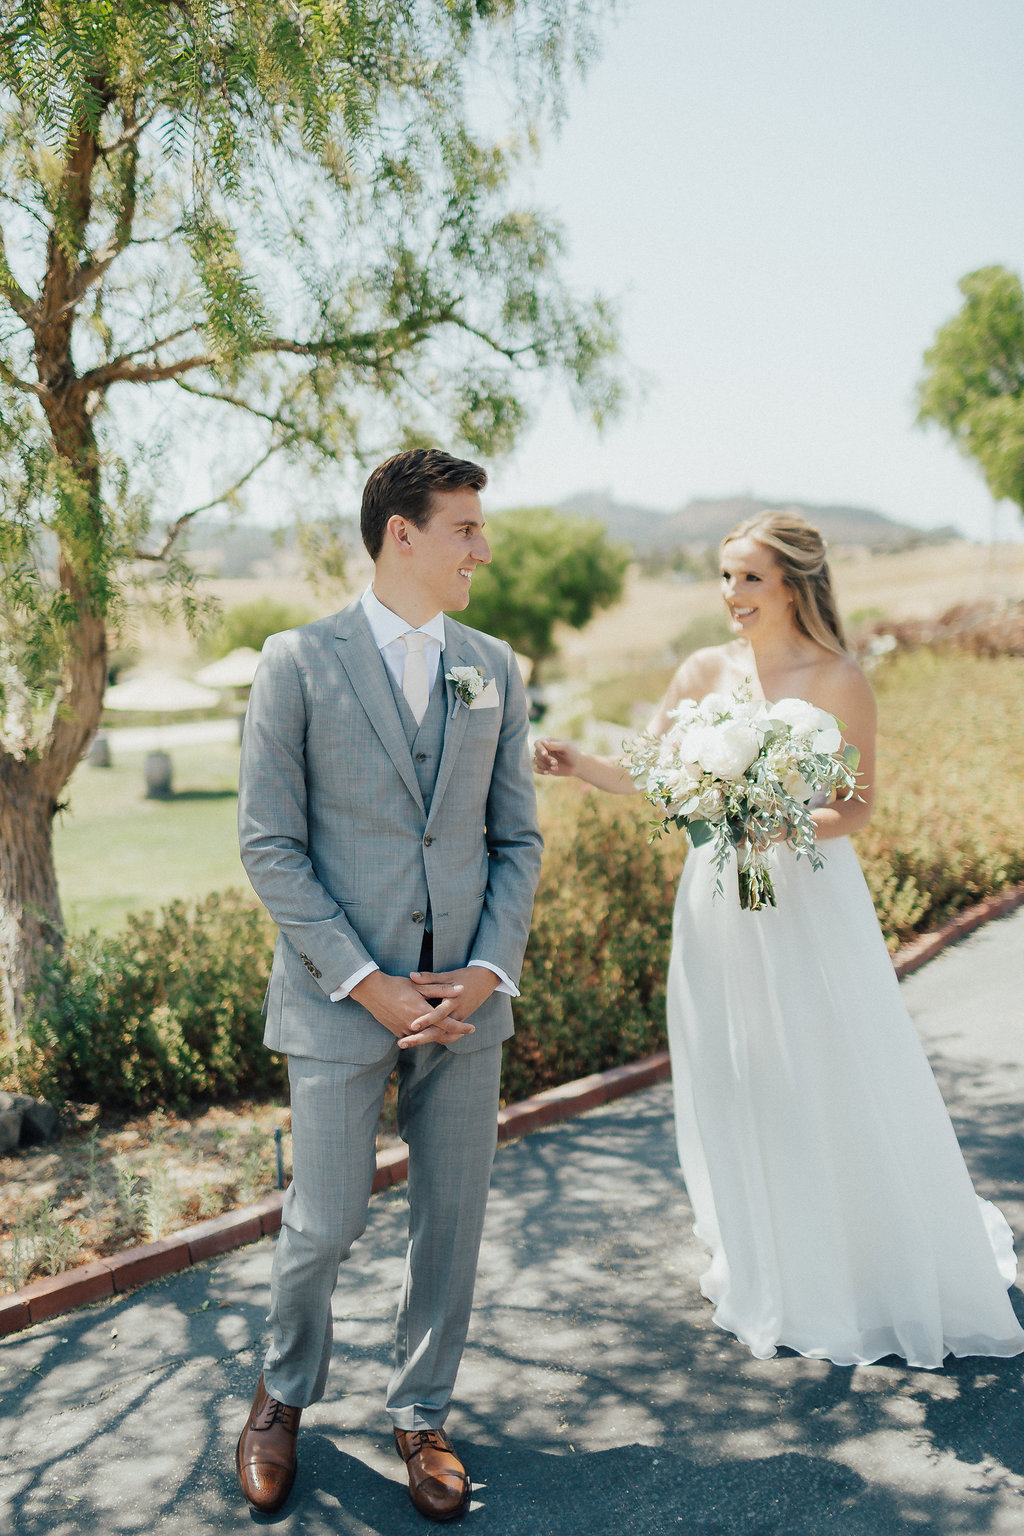 Happy Couple at their Wedding | The Wedding Standard